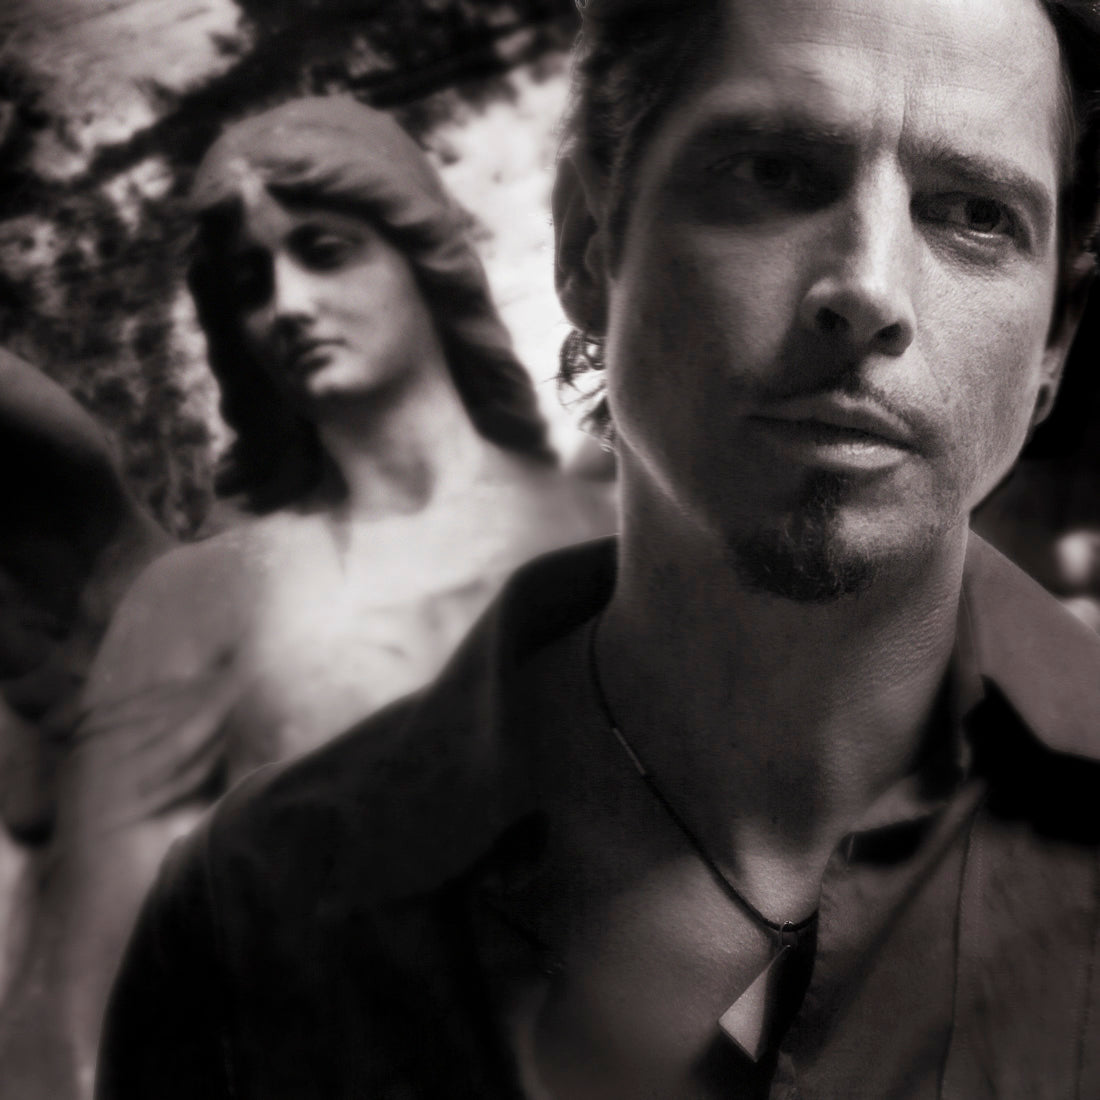 SHPC CHRIS CORNELL WITH ANGEL LOS ANGELES 2006